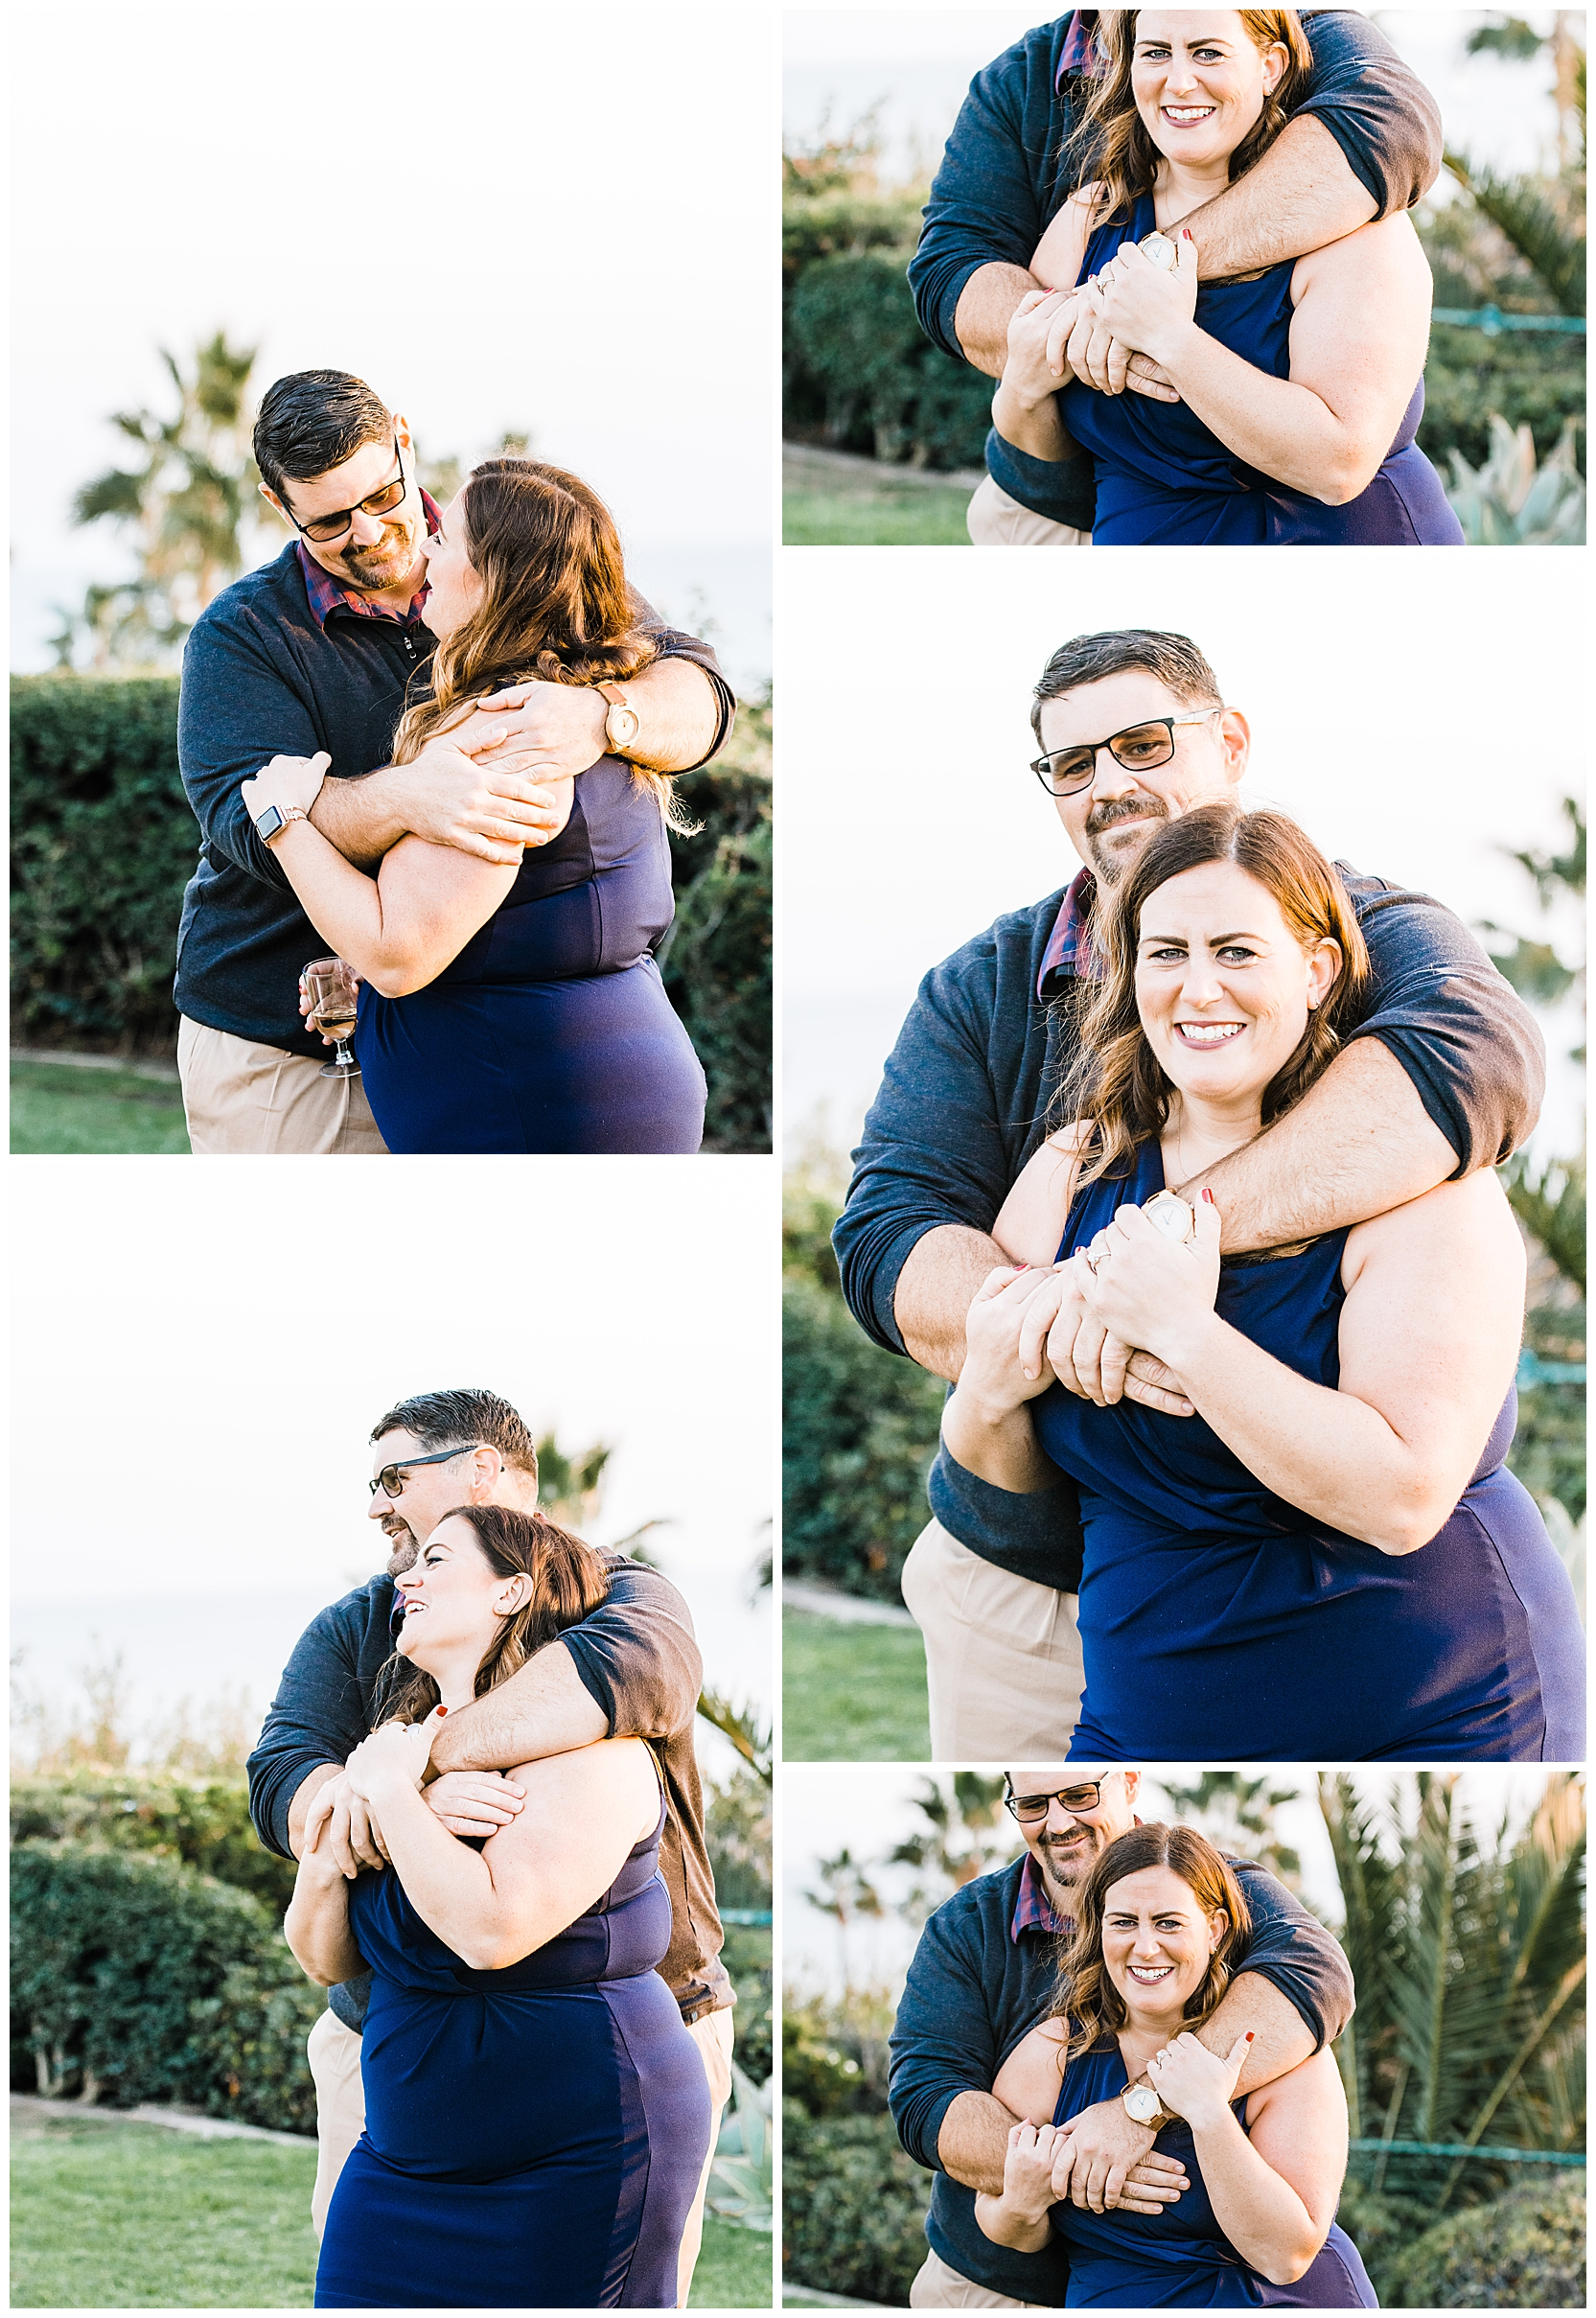 jessicafredericks_huntingtonbeach_proposal_sunset_engagement_0022.jpg